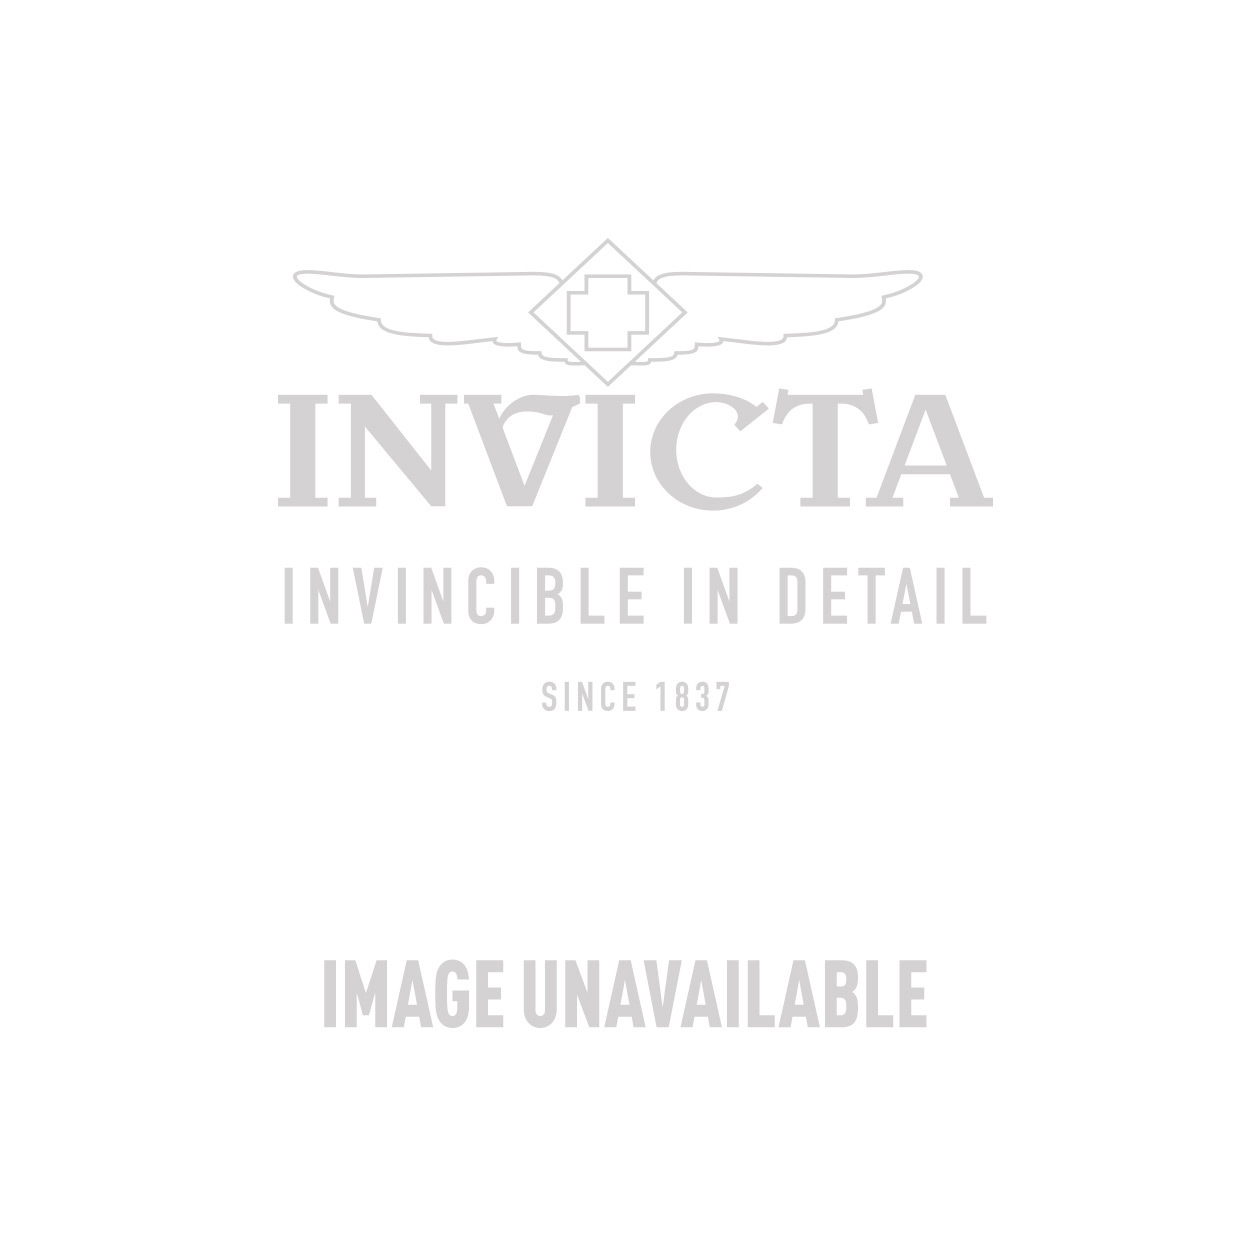 Invicta Speedway Quartz Watch - Stainless Steel case with Blue tone Leather band - Model 18386